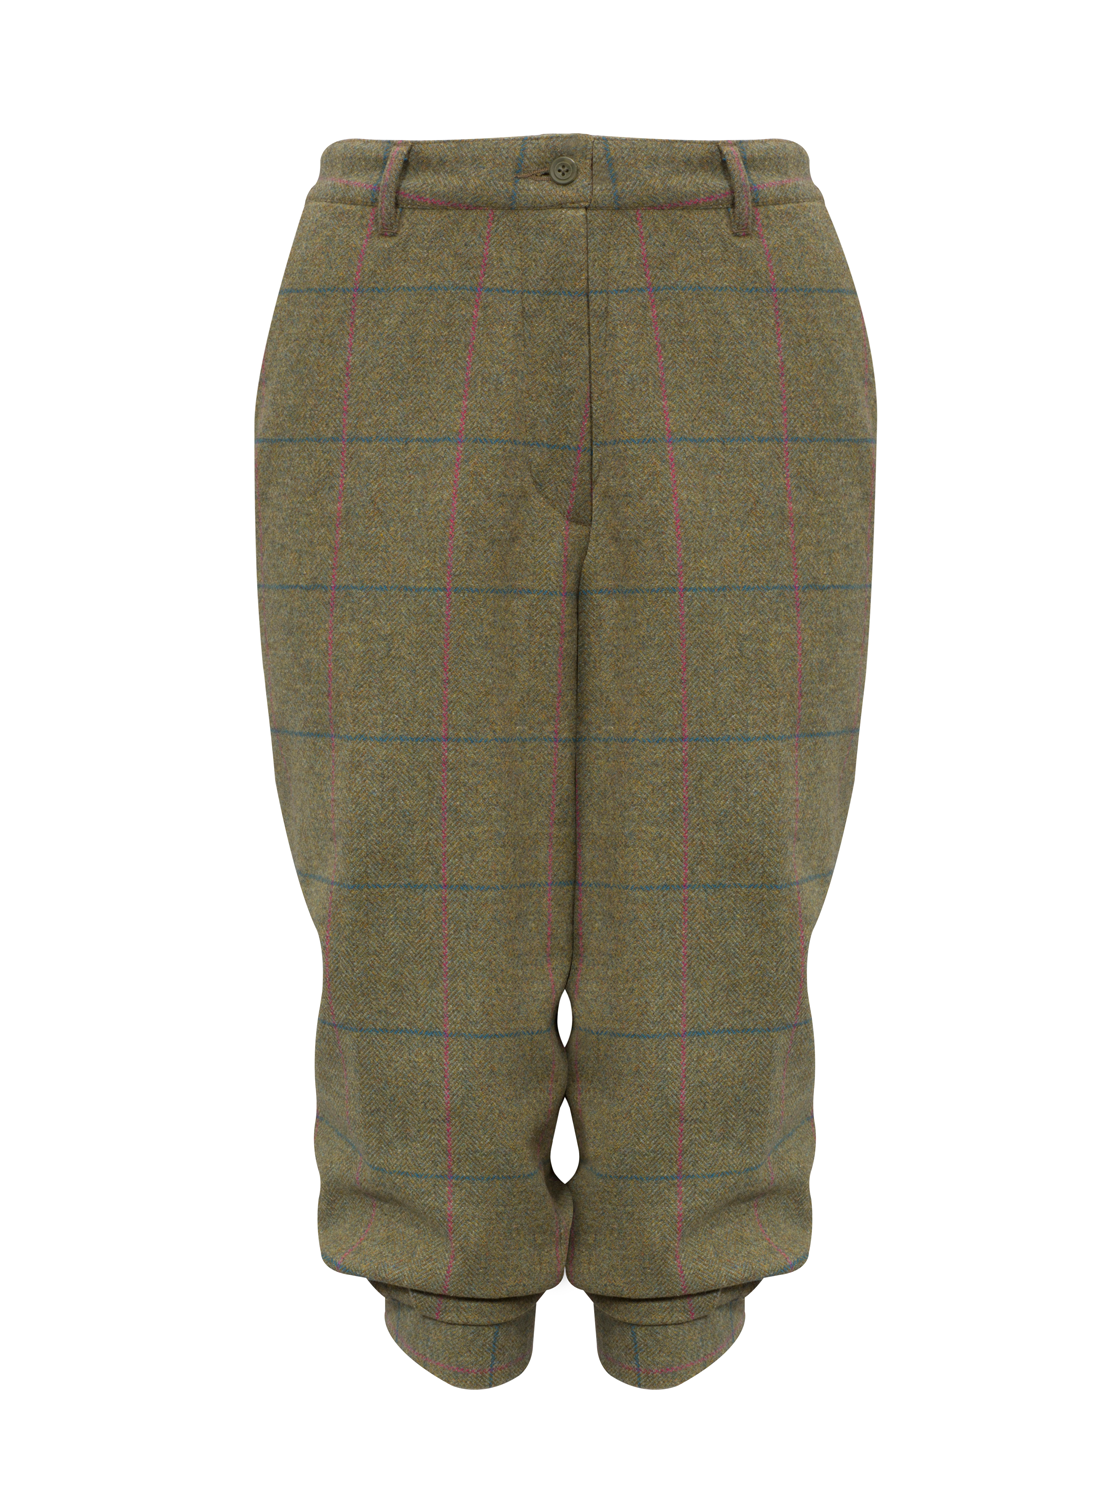 9a0be043b5d7d Alan Paine Combrook Juniper Tweed Ladies Breeks - Bredon Hill Country